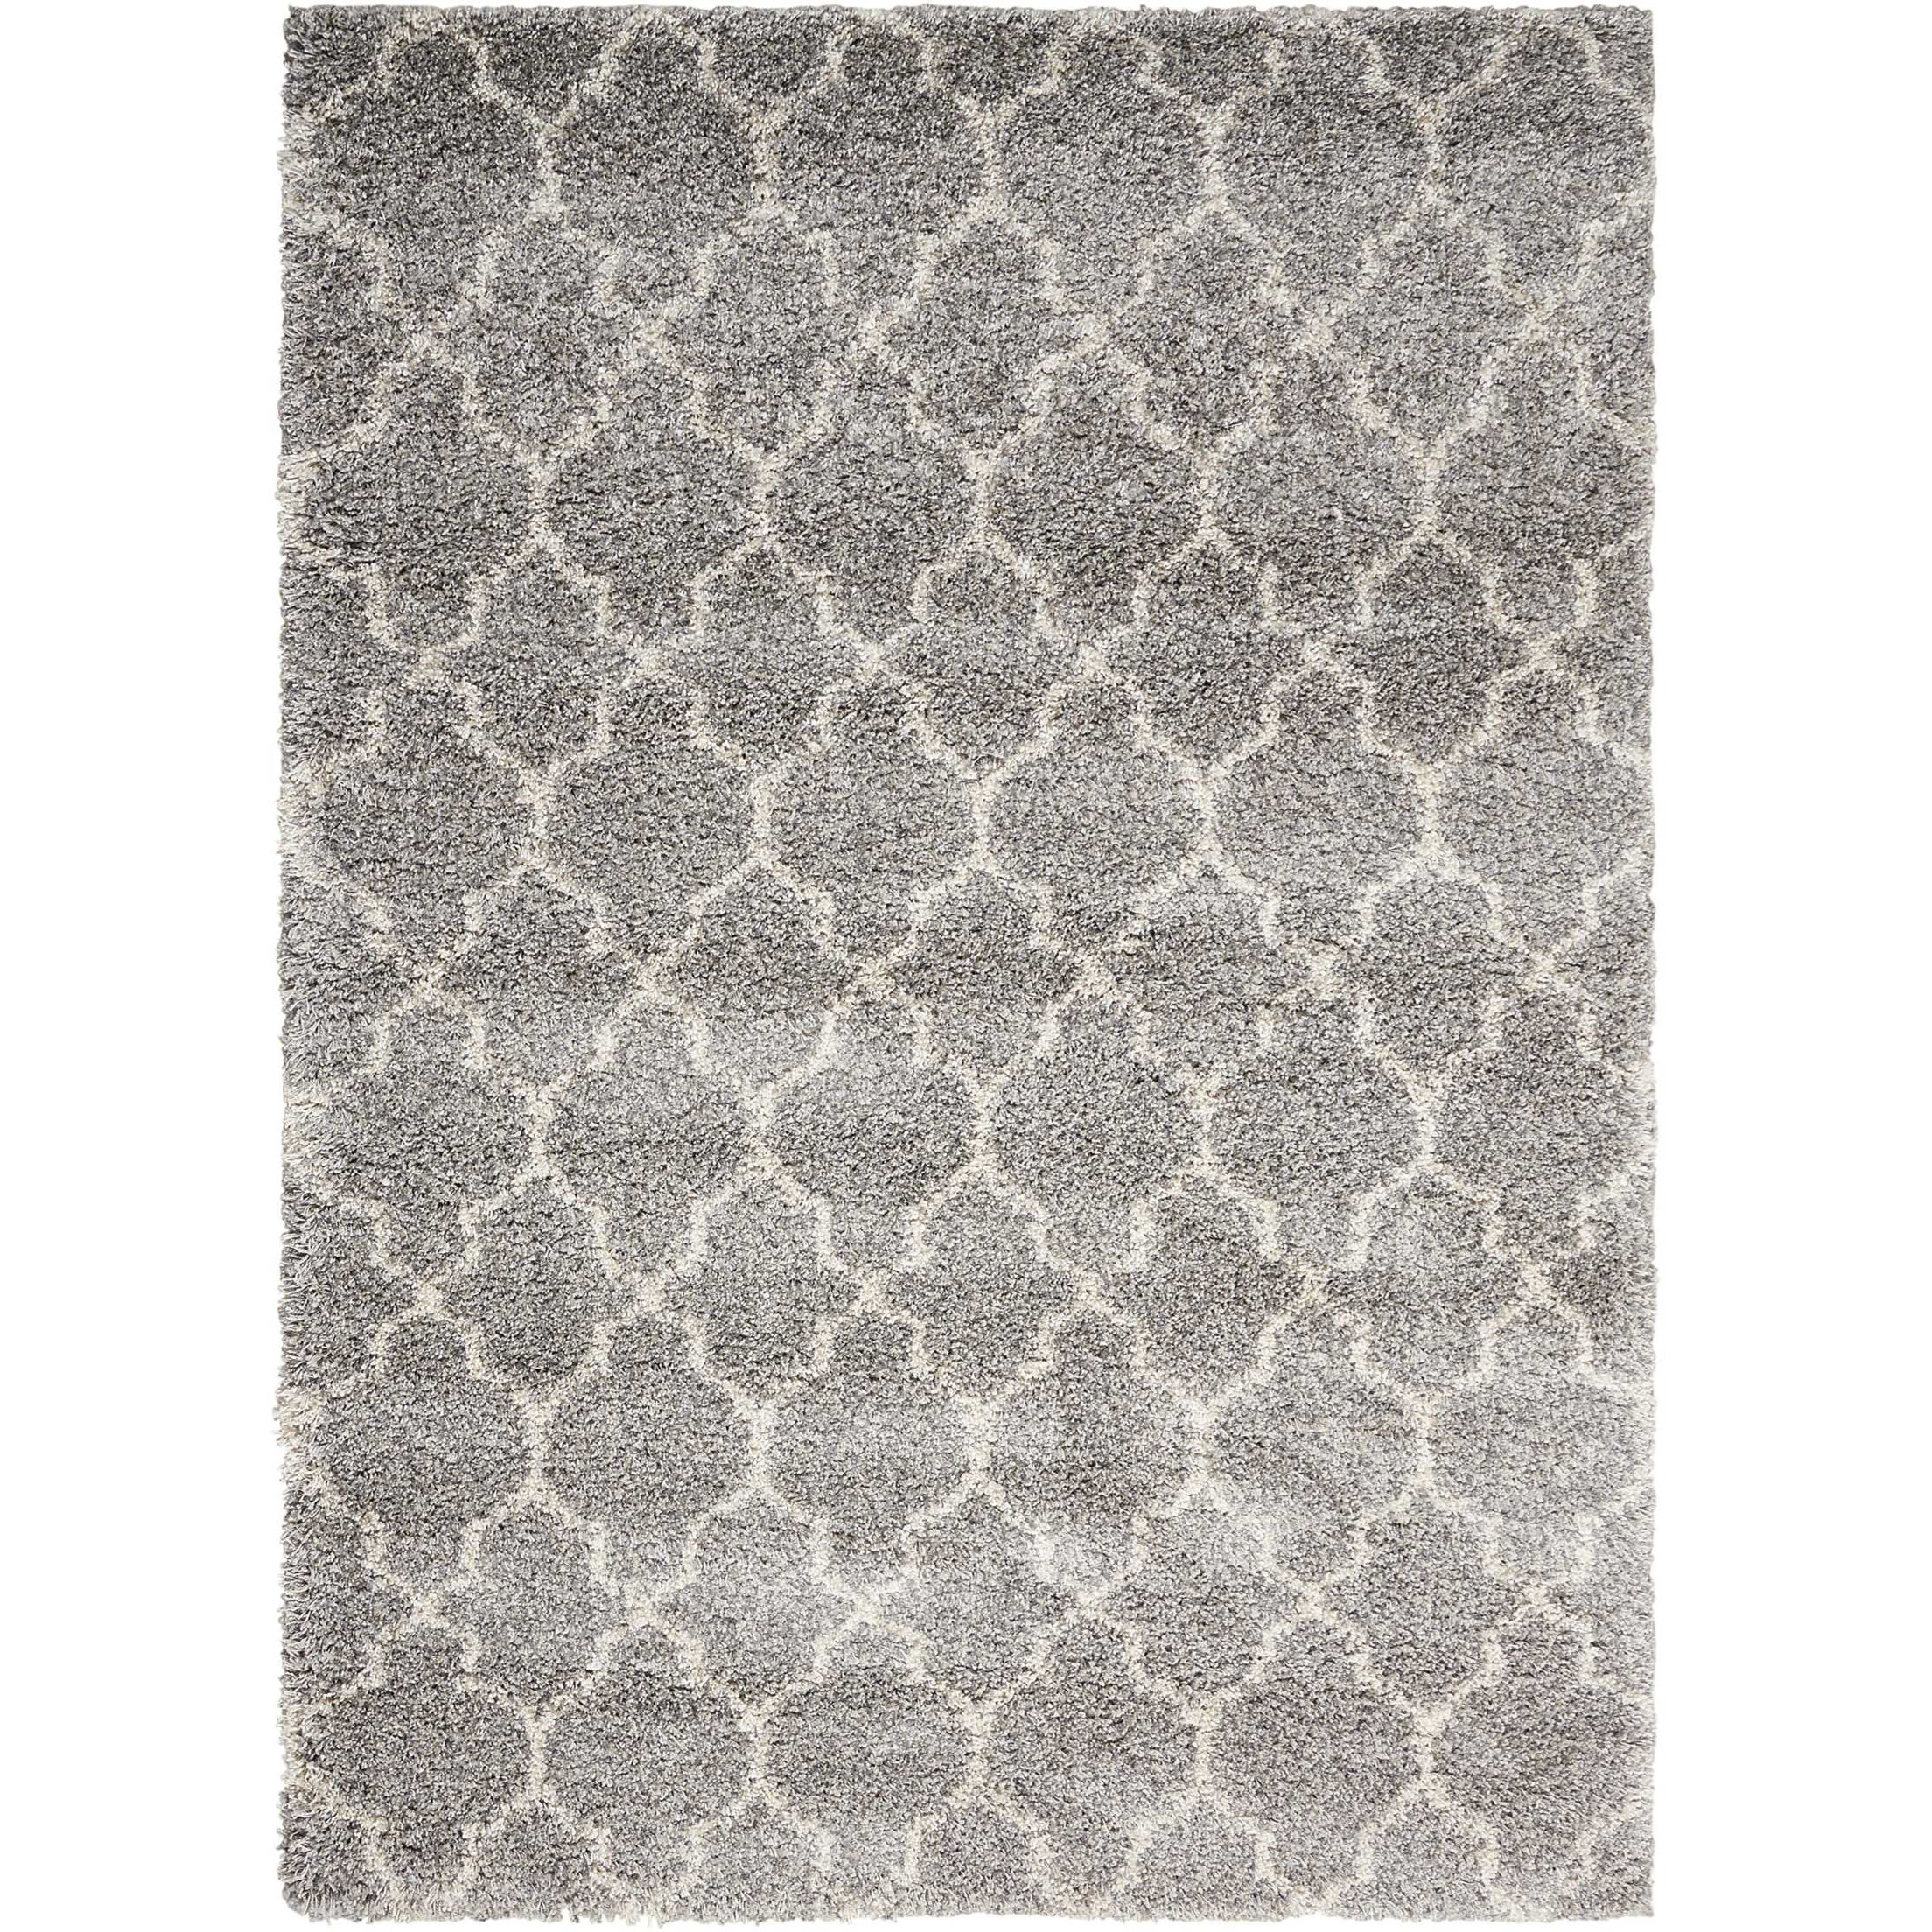 "Amore 3'11"" x 5'11"" Ash Rectangle Rug by Nourison at Sprintz Furniture"